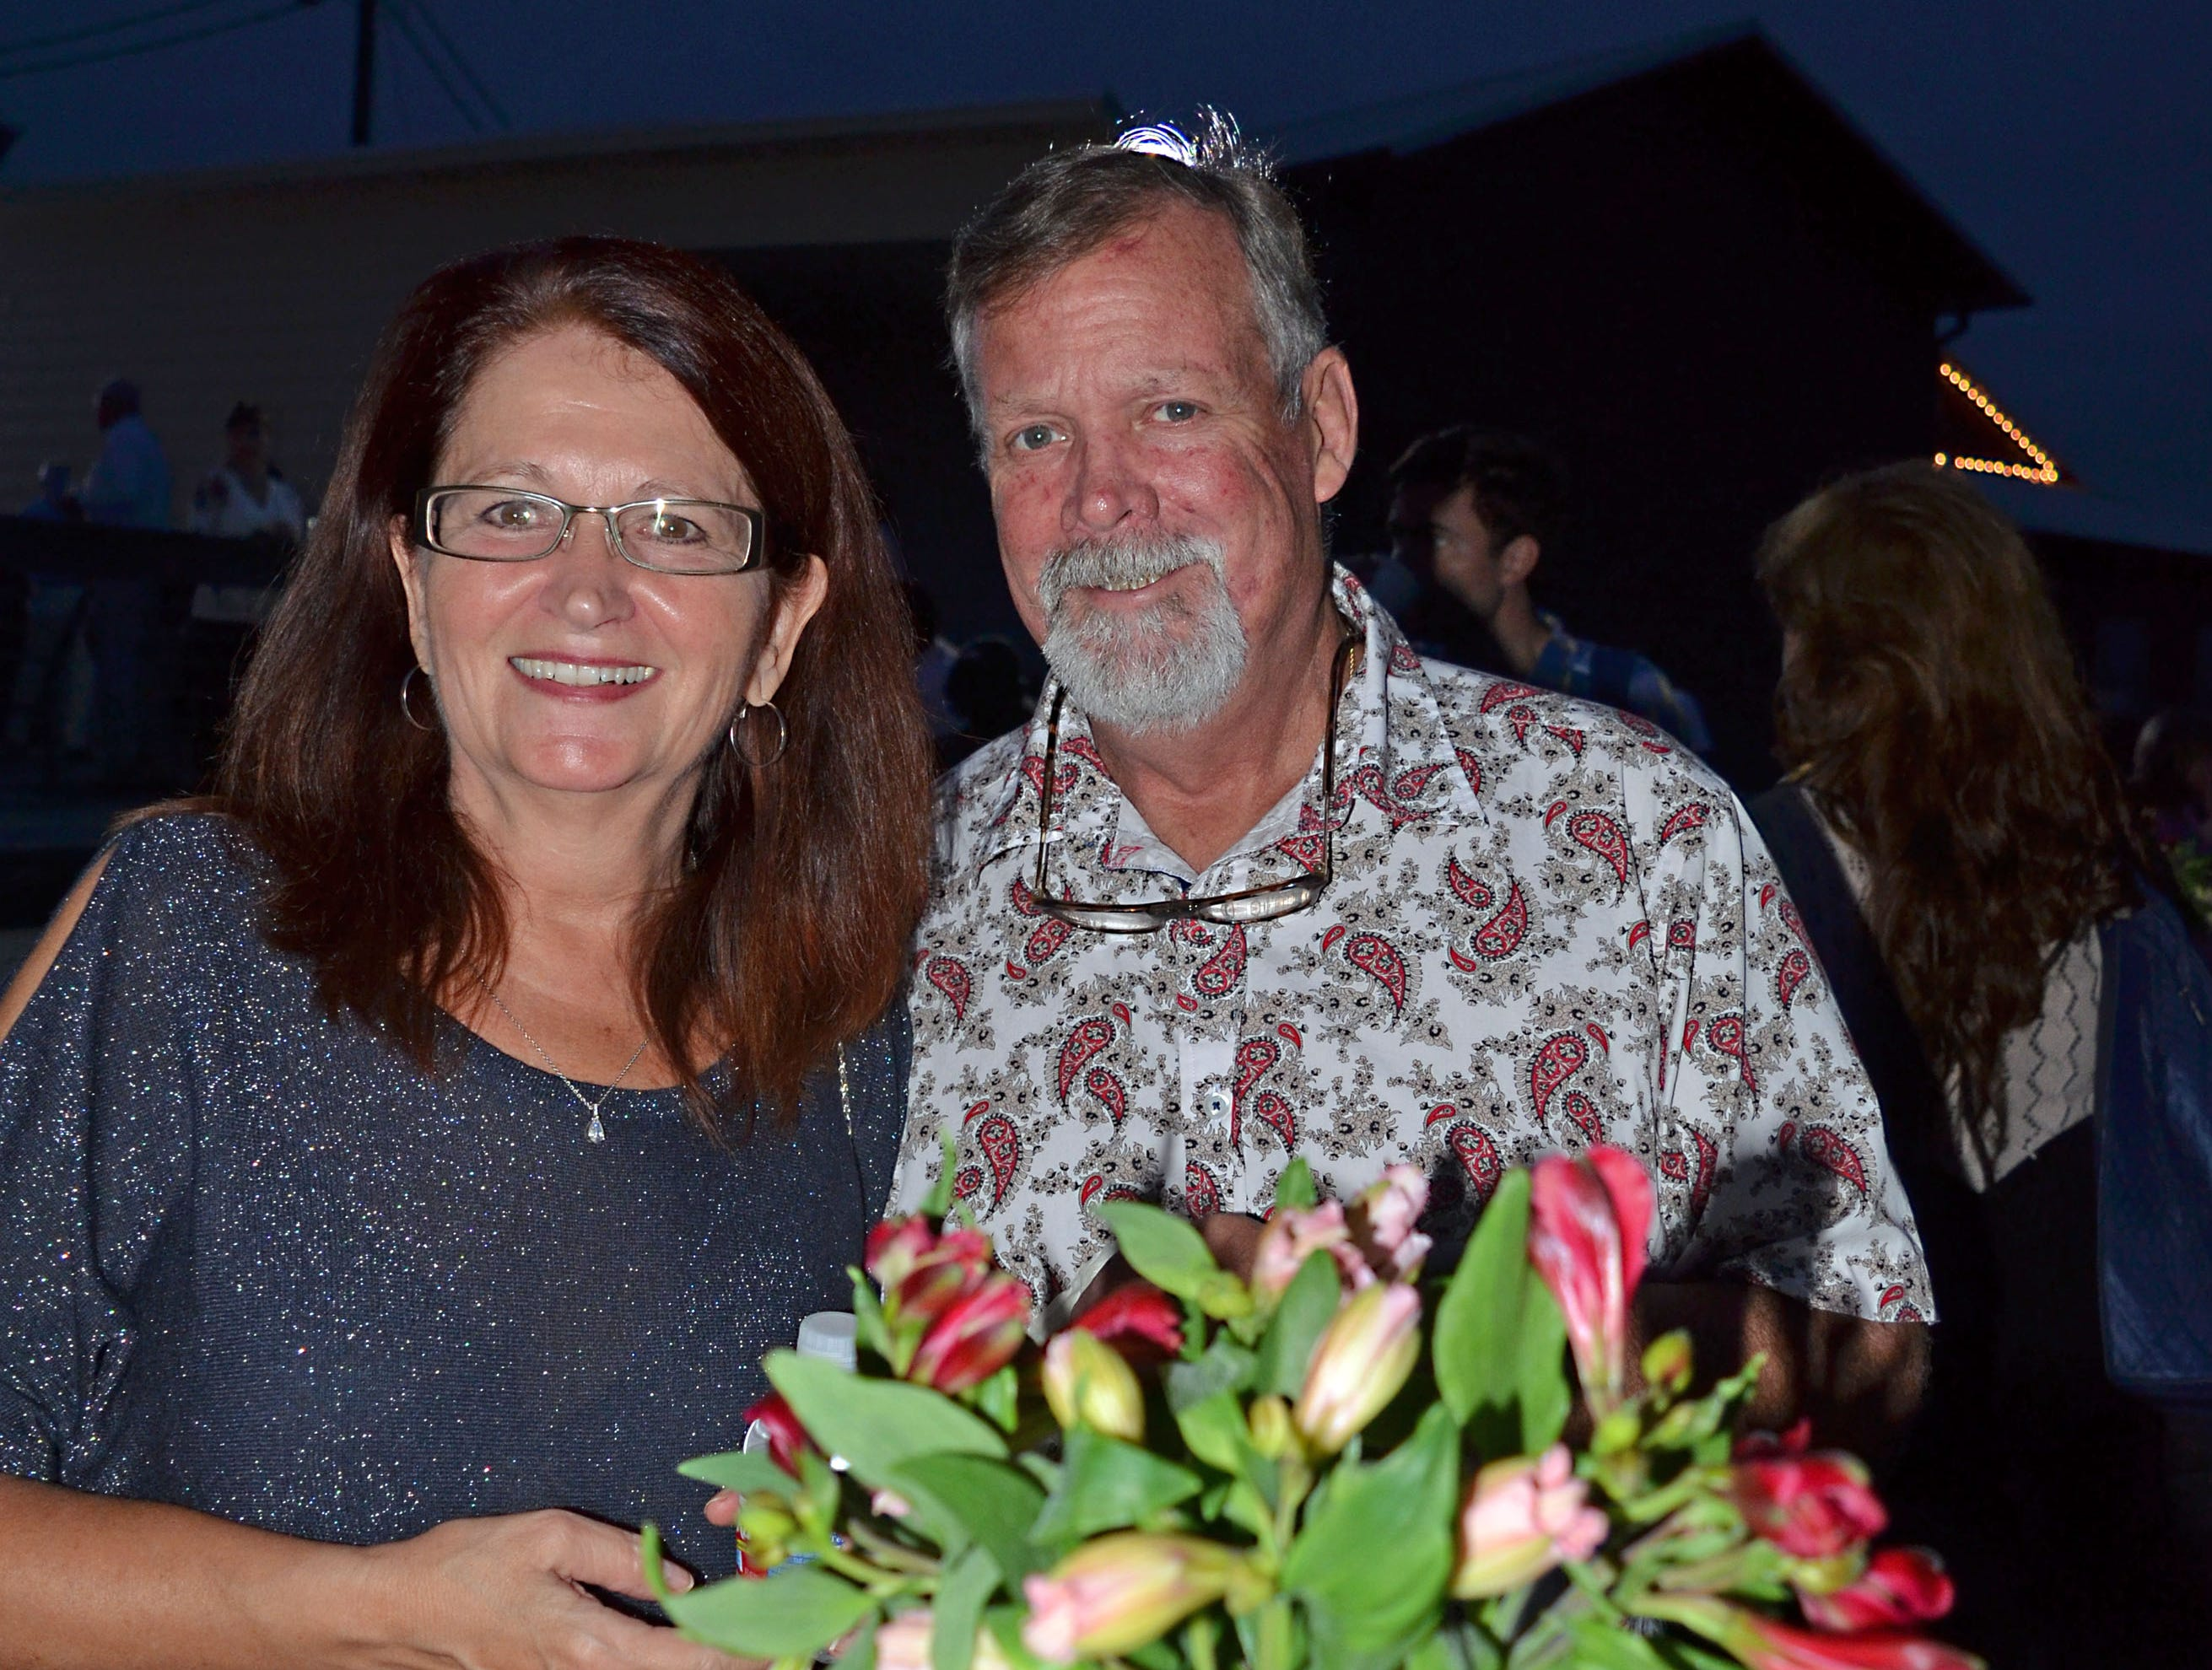 Tammy and Chip Evins, of Madison, enjoy celebrating their 36th wedding anniversary while attending Sweetest Chefs at The Lake House in Ridgeland.